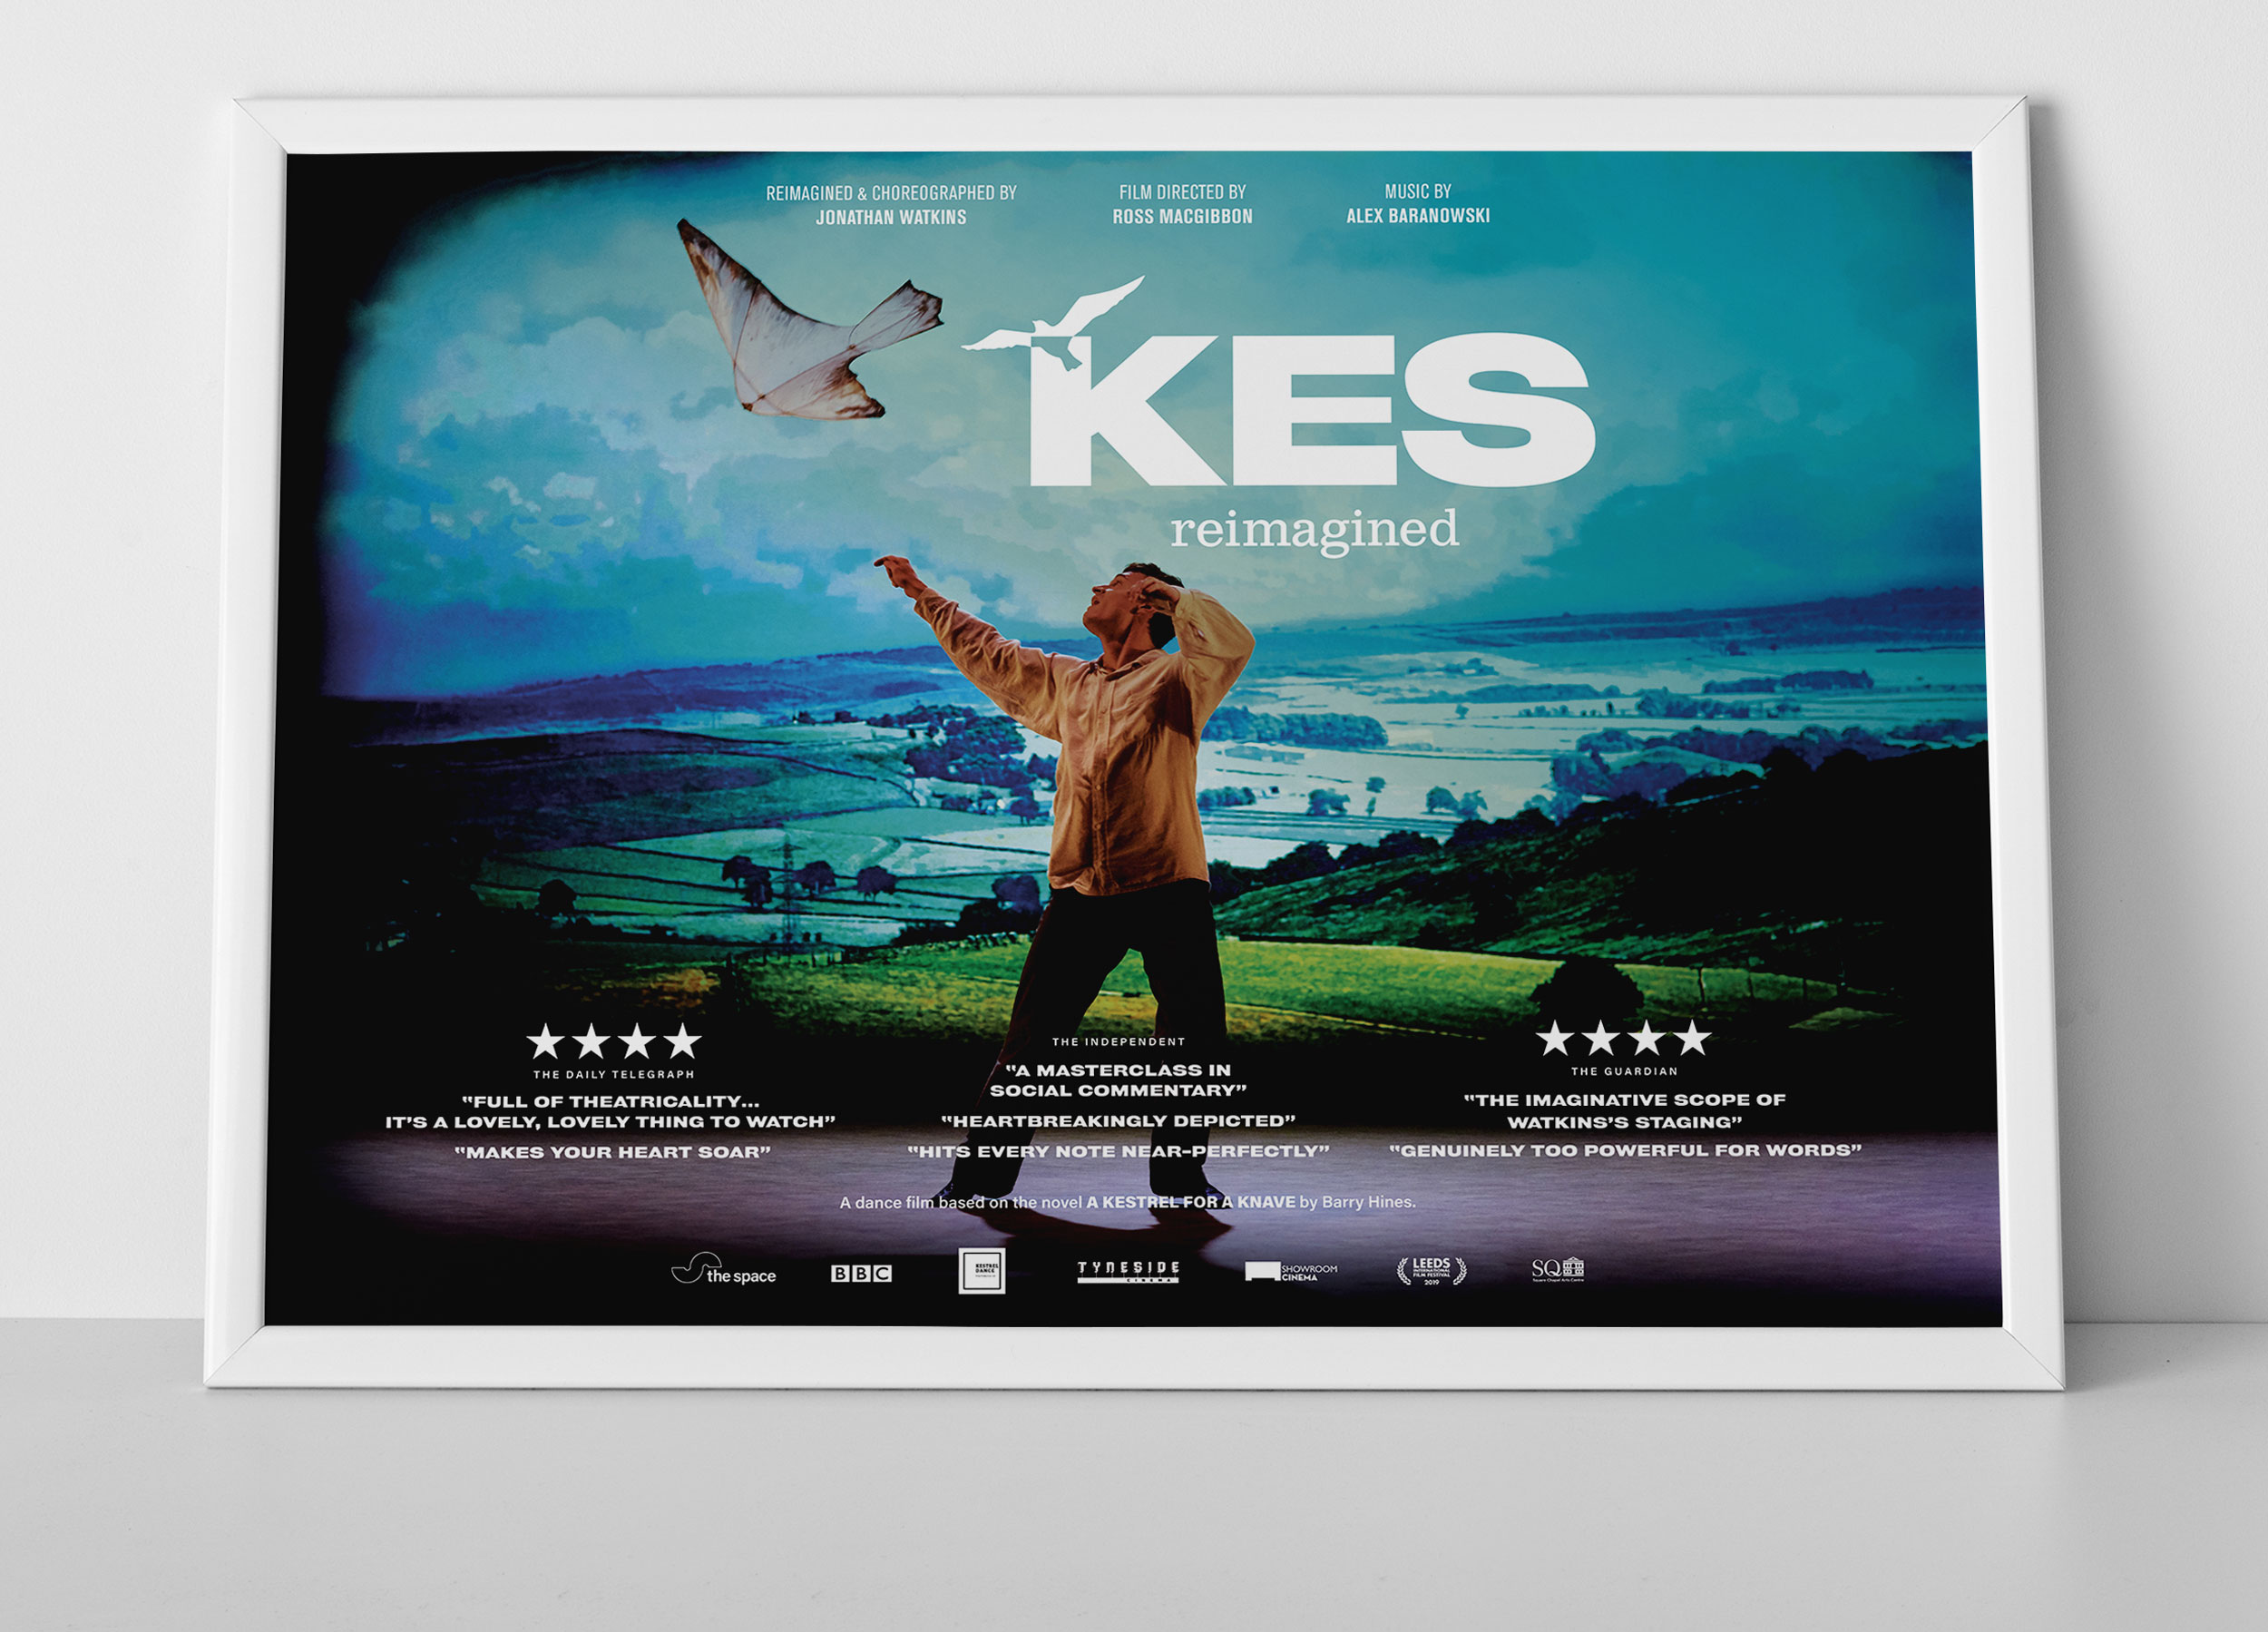 Kes Reimagined cinema poster